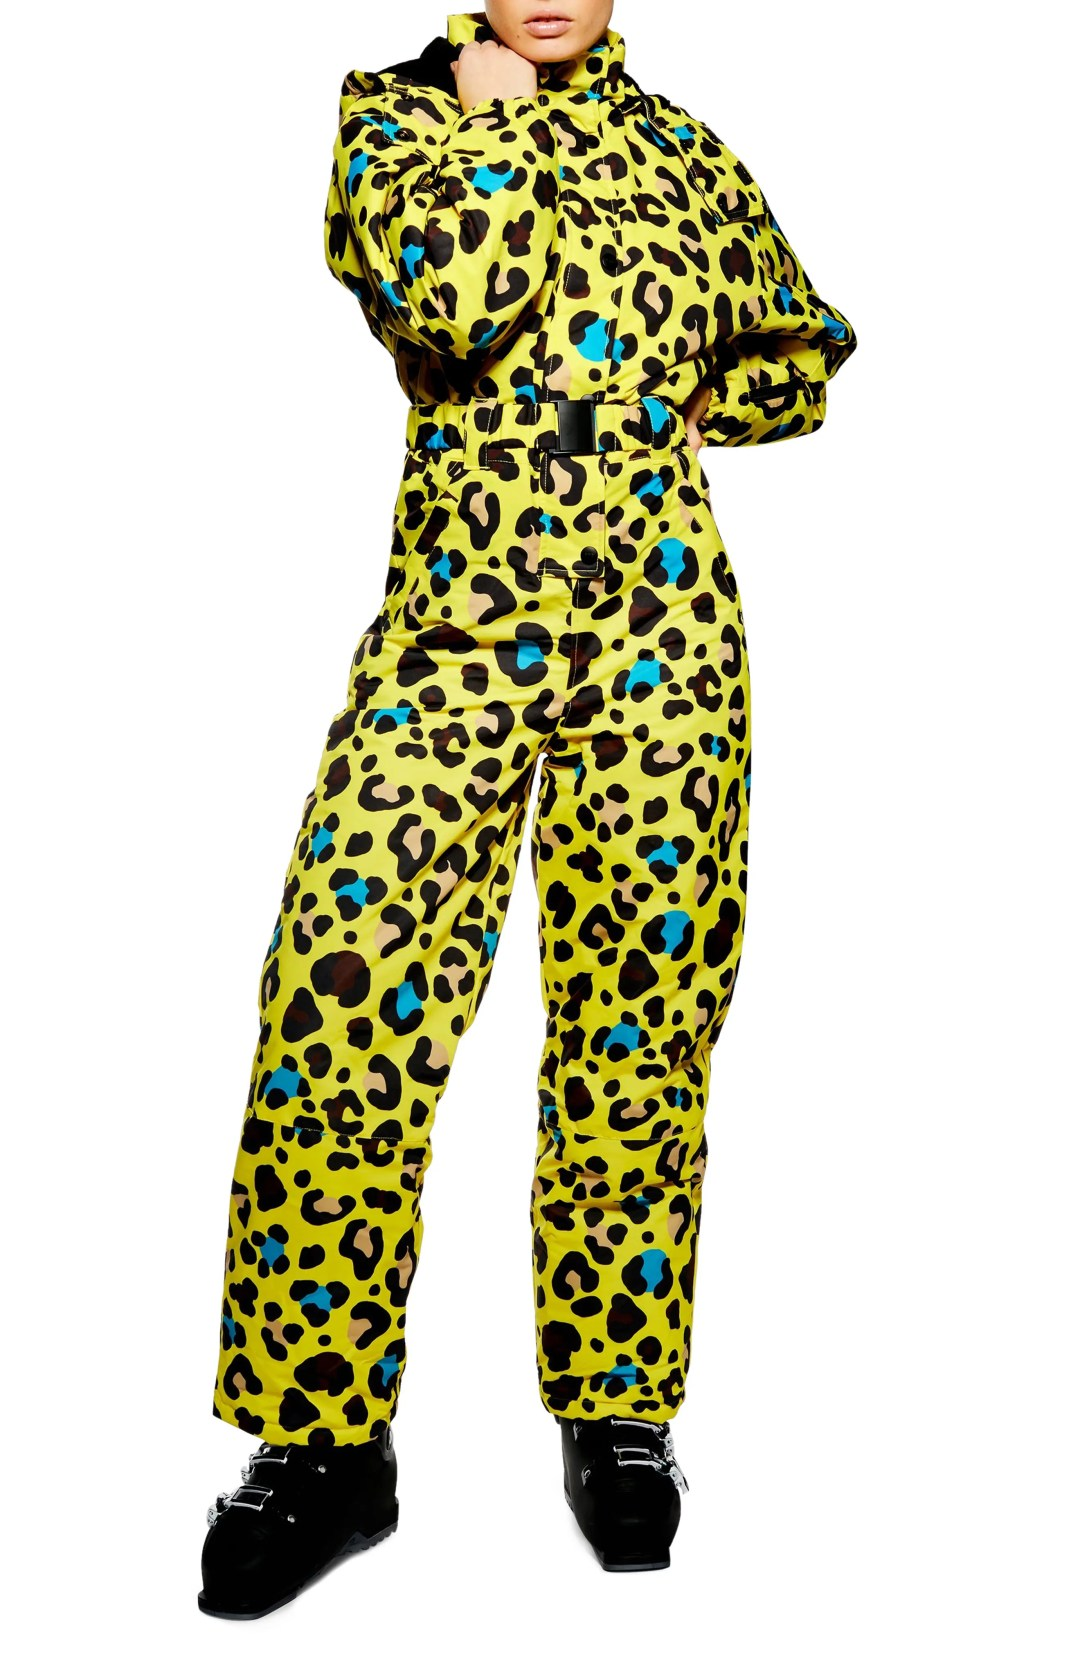 2dd94cc8e Women's Topshop Sno Gwen Waterproof Leopard Jumpsuit, Size 4 US (fits like  0-2) – Yellow – TOPSHOP AT NORDSTROM – $330.00